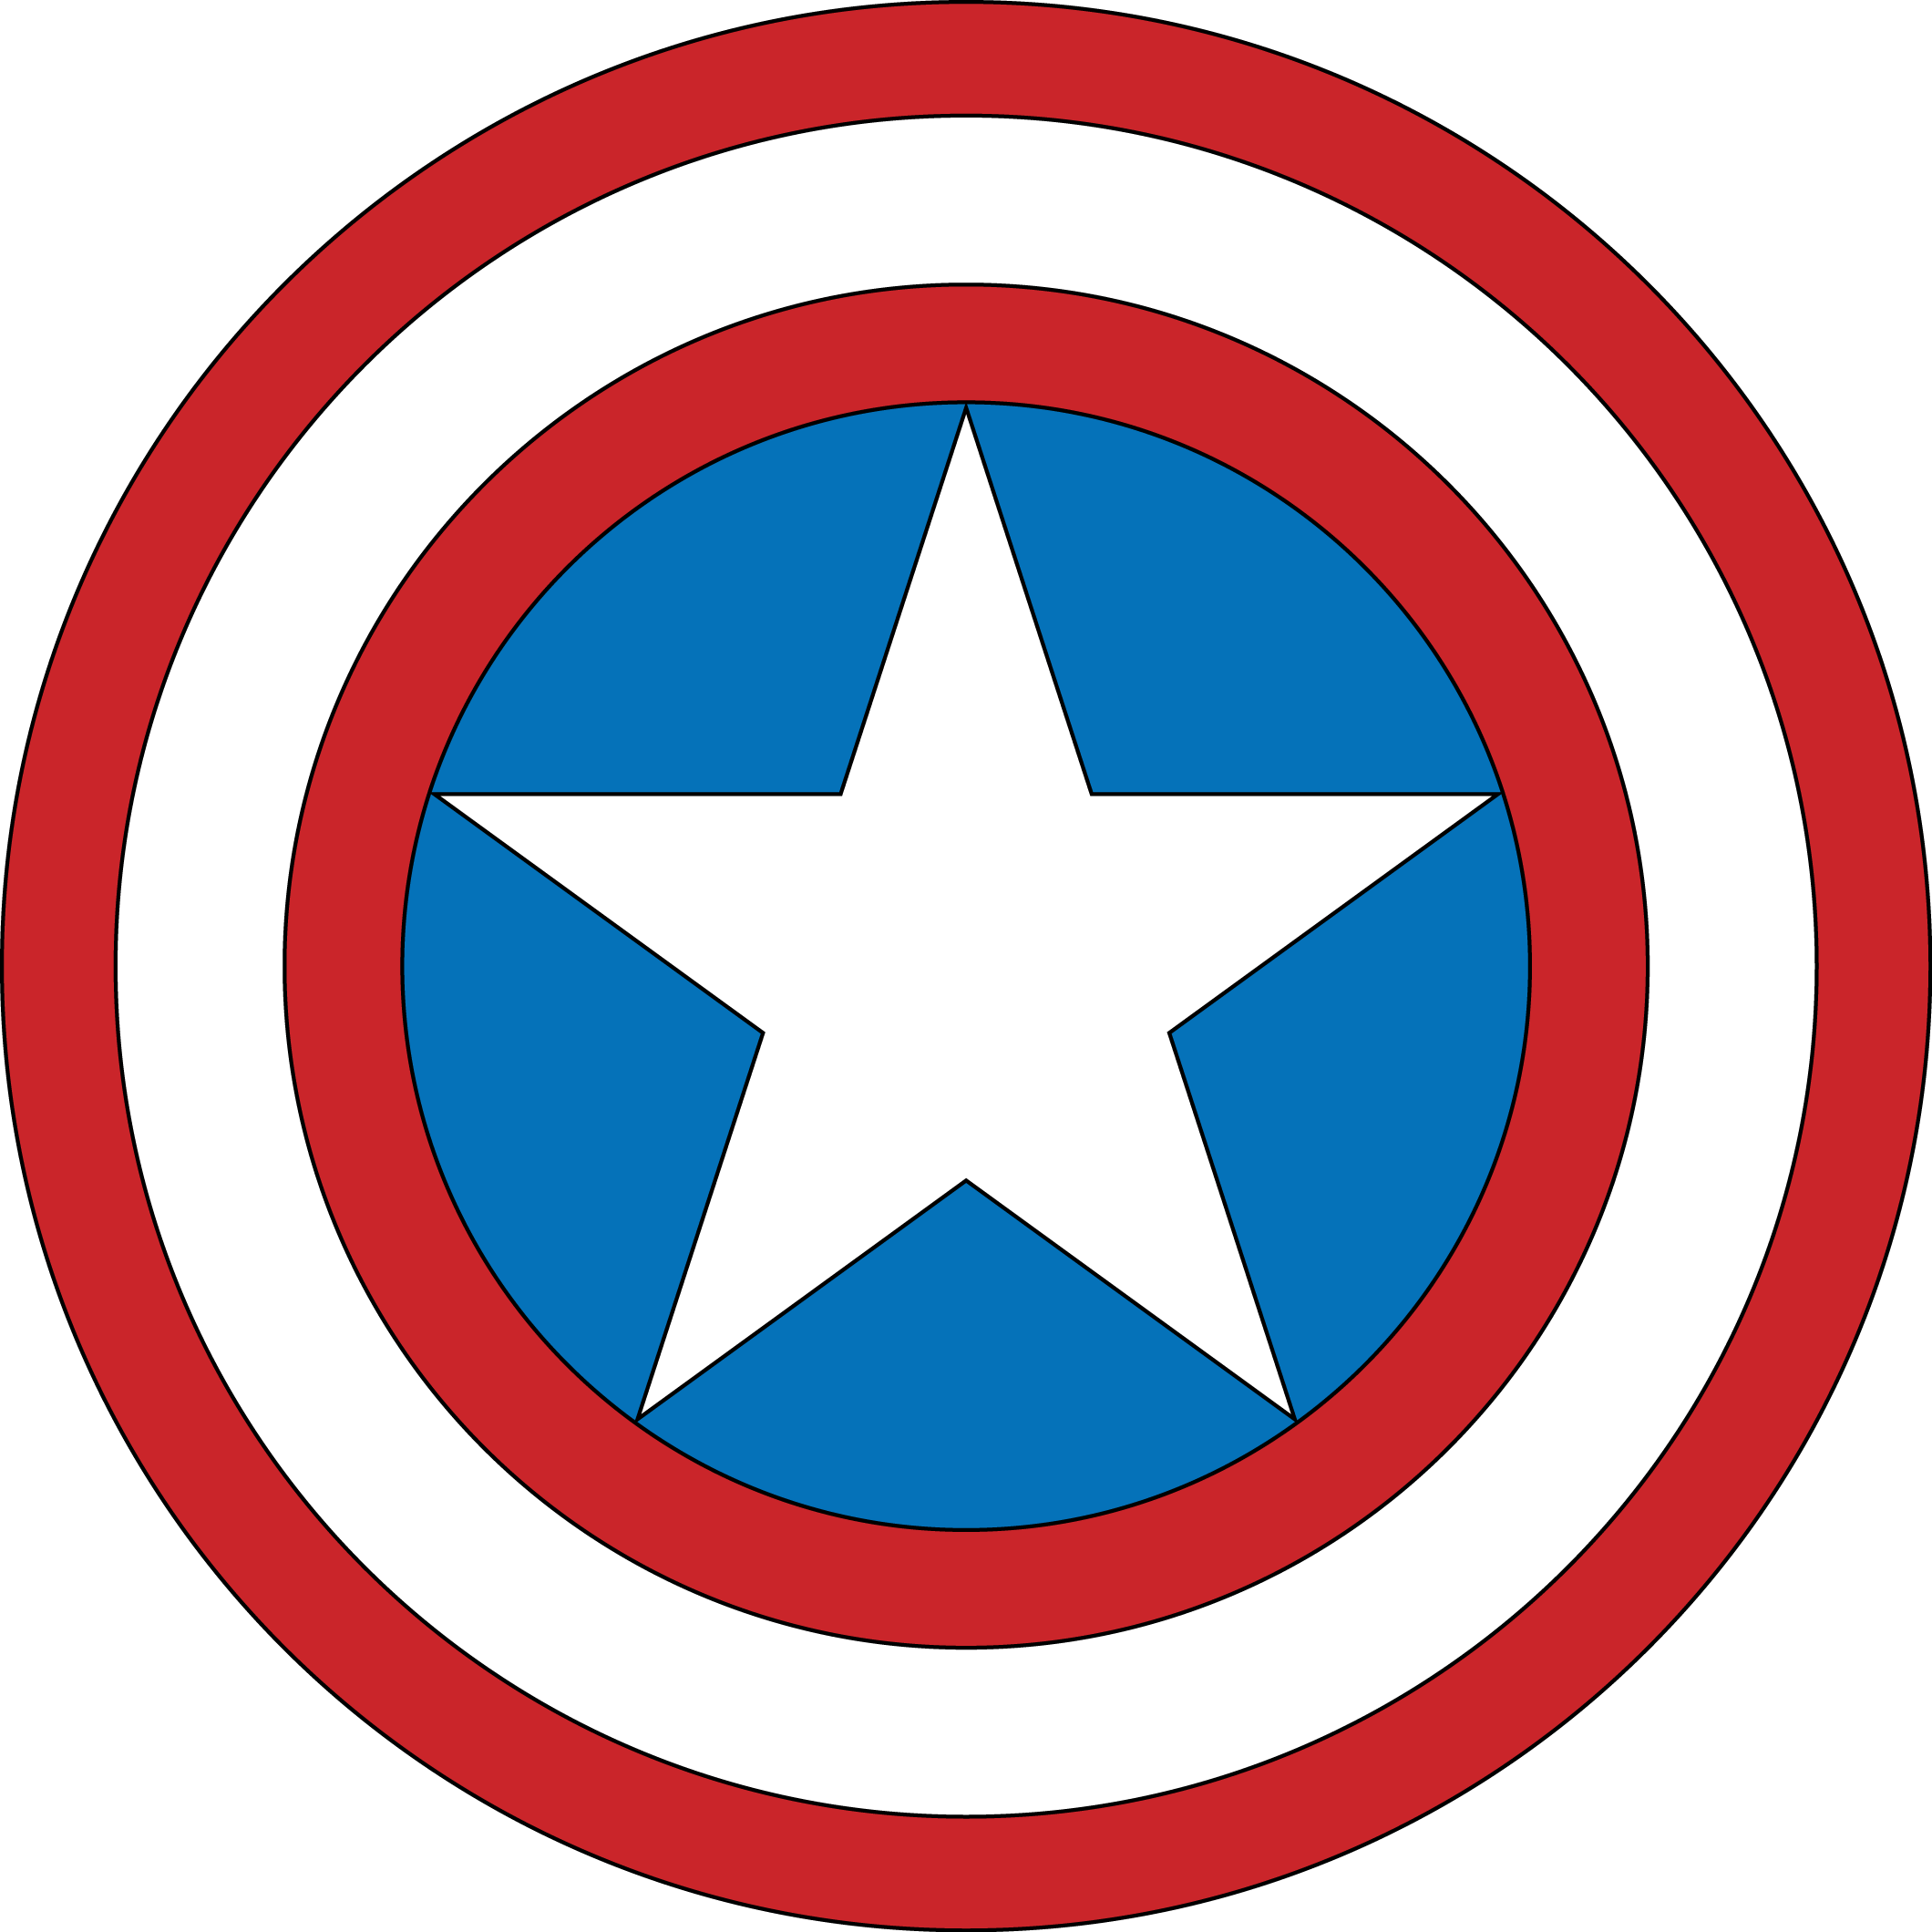 filebouclier captain america 1018png - Bouclier Captain America